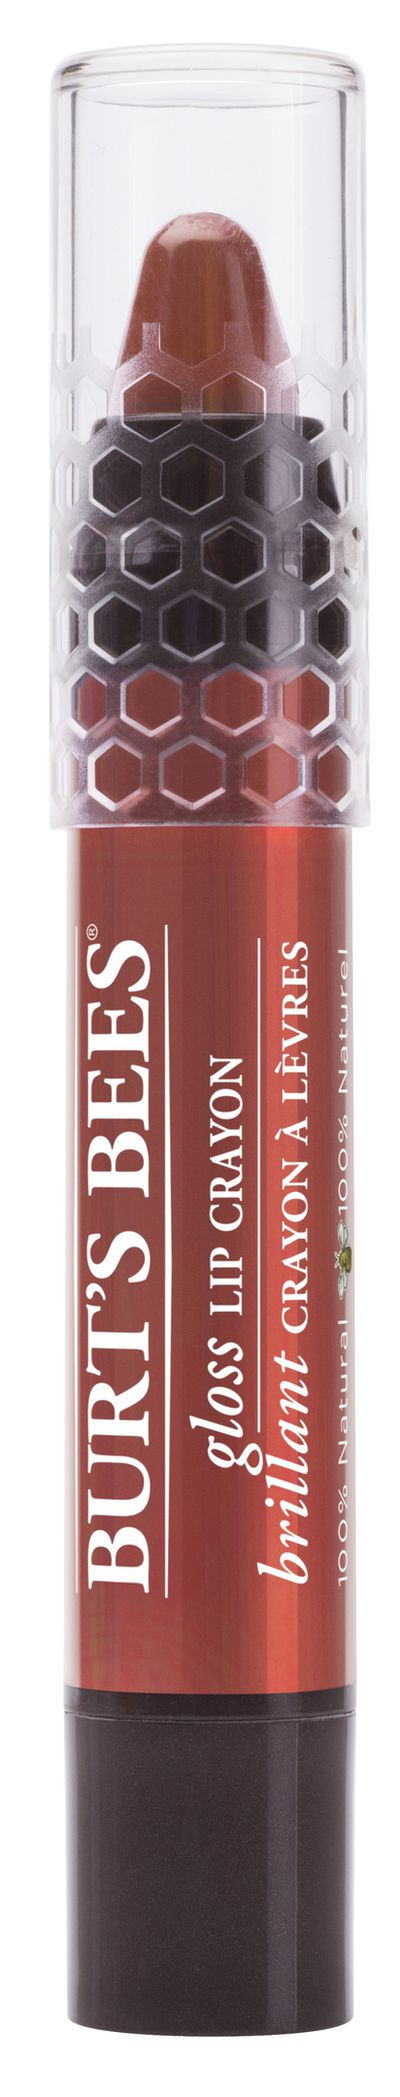 "<a href=""http://www.burtsbees.com.au/natural-products/lips-lip-colour/gloss-lip-crayon.html"" target=""_blank"">Burt's Bees Gloss Lip Crayon, $16.95.</a><br /> Yes, it's a lip crayon with a velvety gloss finish. But it can easily be used as blush too! Seriously. Try it."